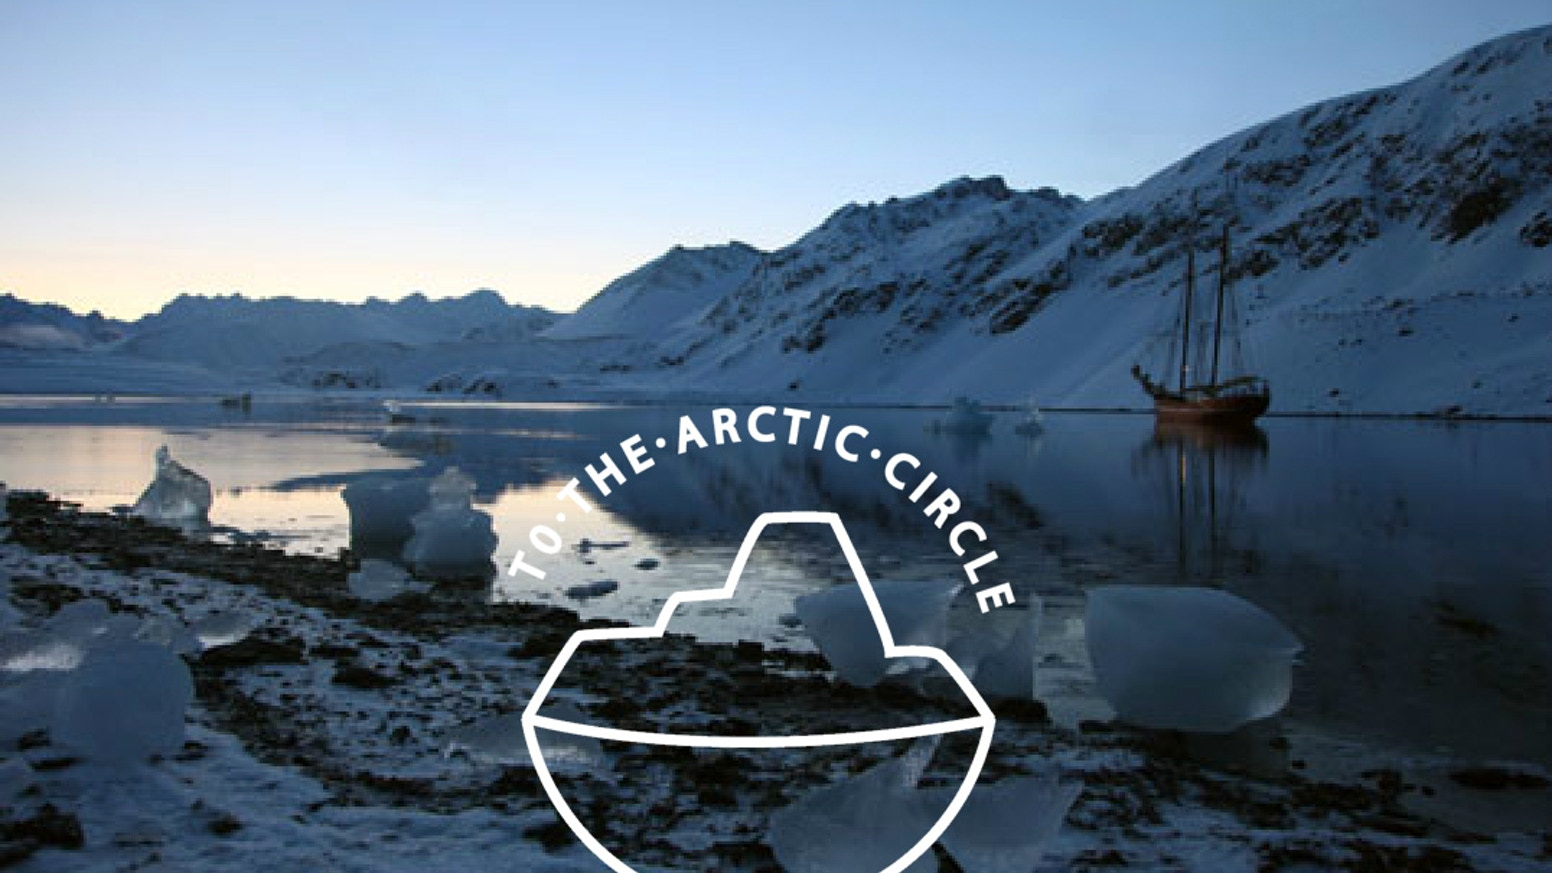 Support an artist on The Arctic Circle Residency! A collaborative sailing voyage into the Norwegian Arctic archipelago of Svalbard.